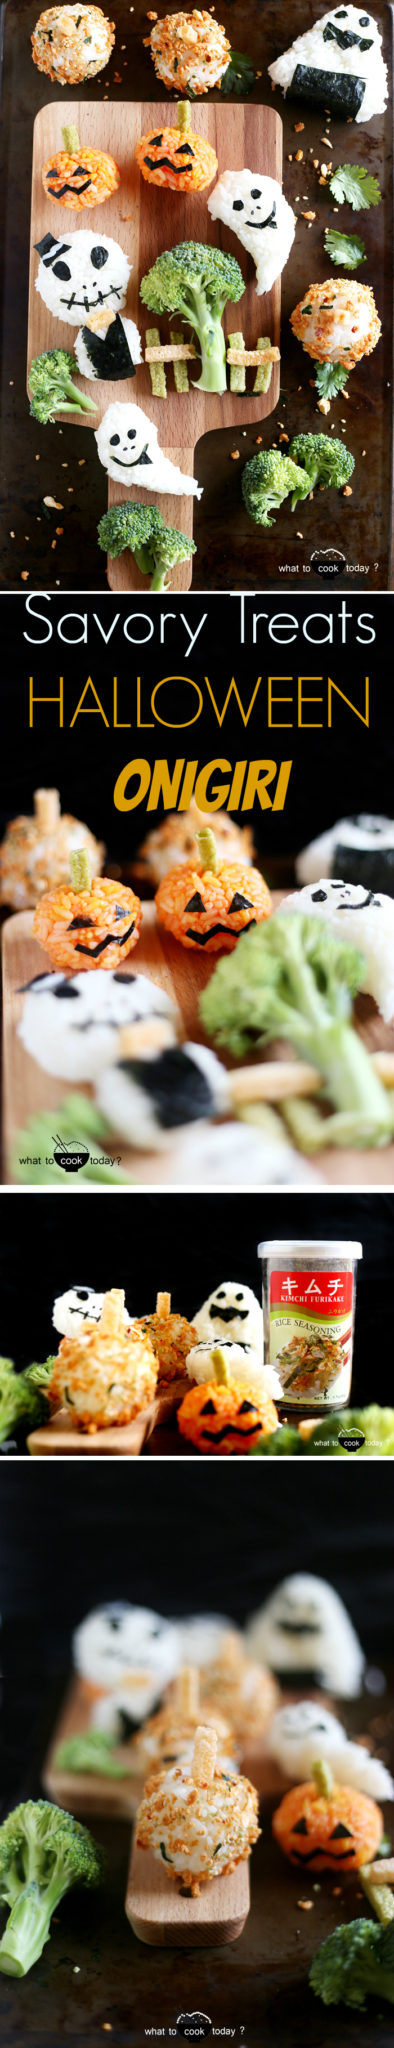 Onigiri for Halloween. Made with rice, Nori seaweed, Veggie straws, etc. Kids will have fun without extra sweets. They have enough sweets in their buckets ;)